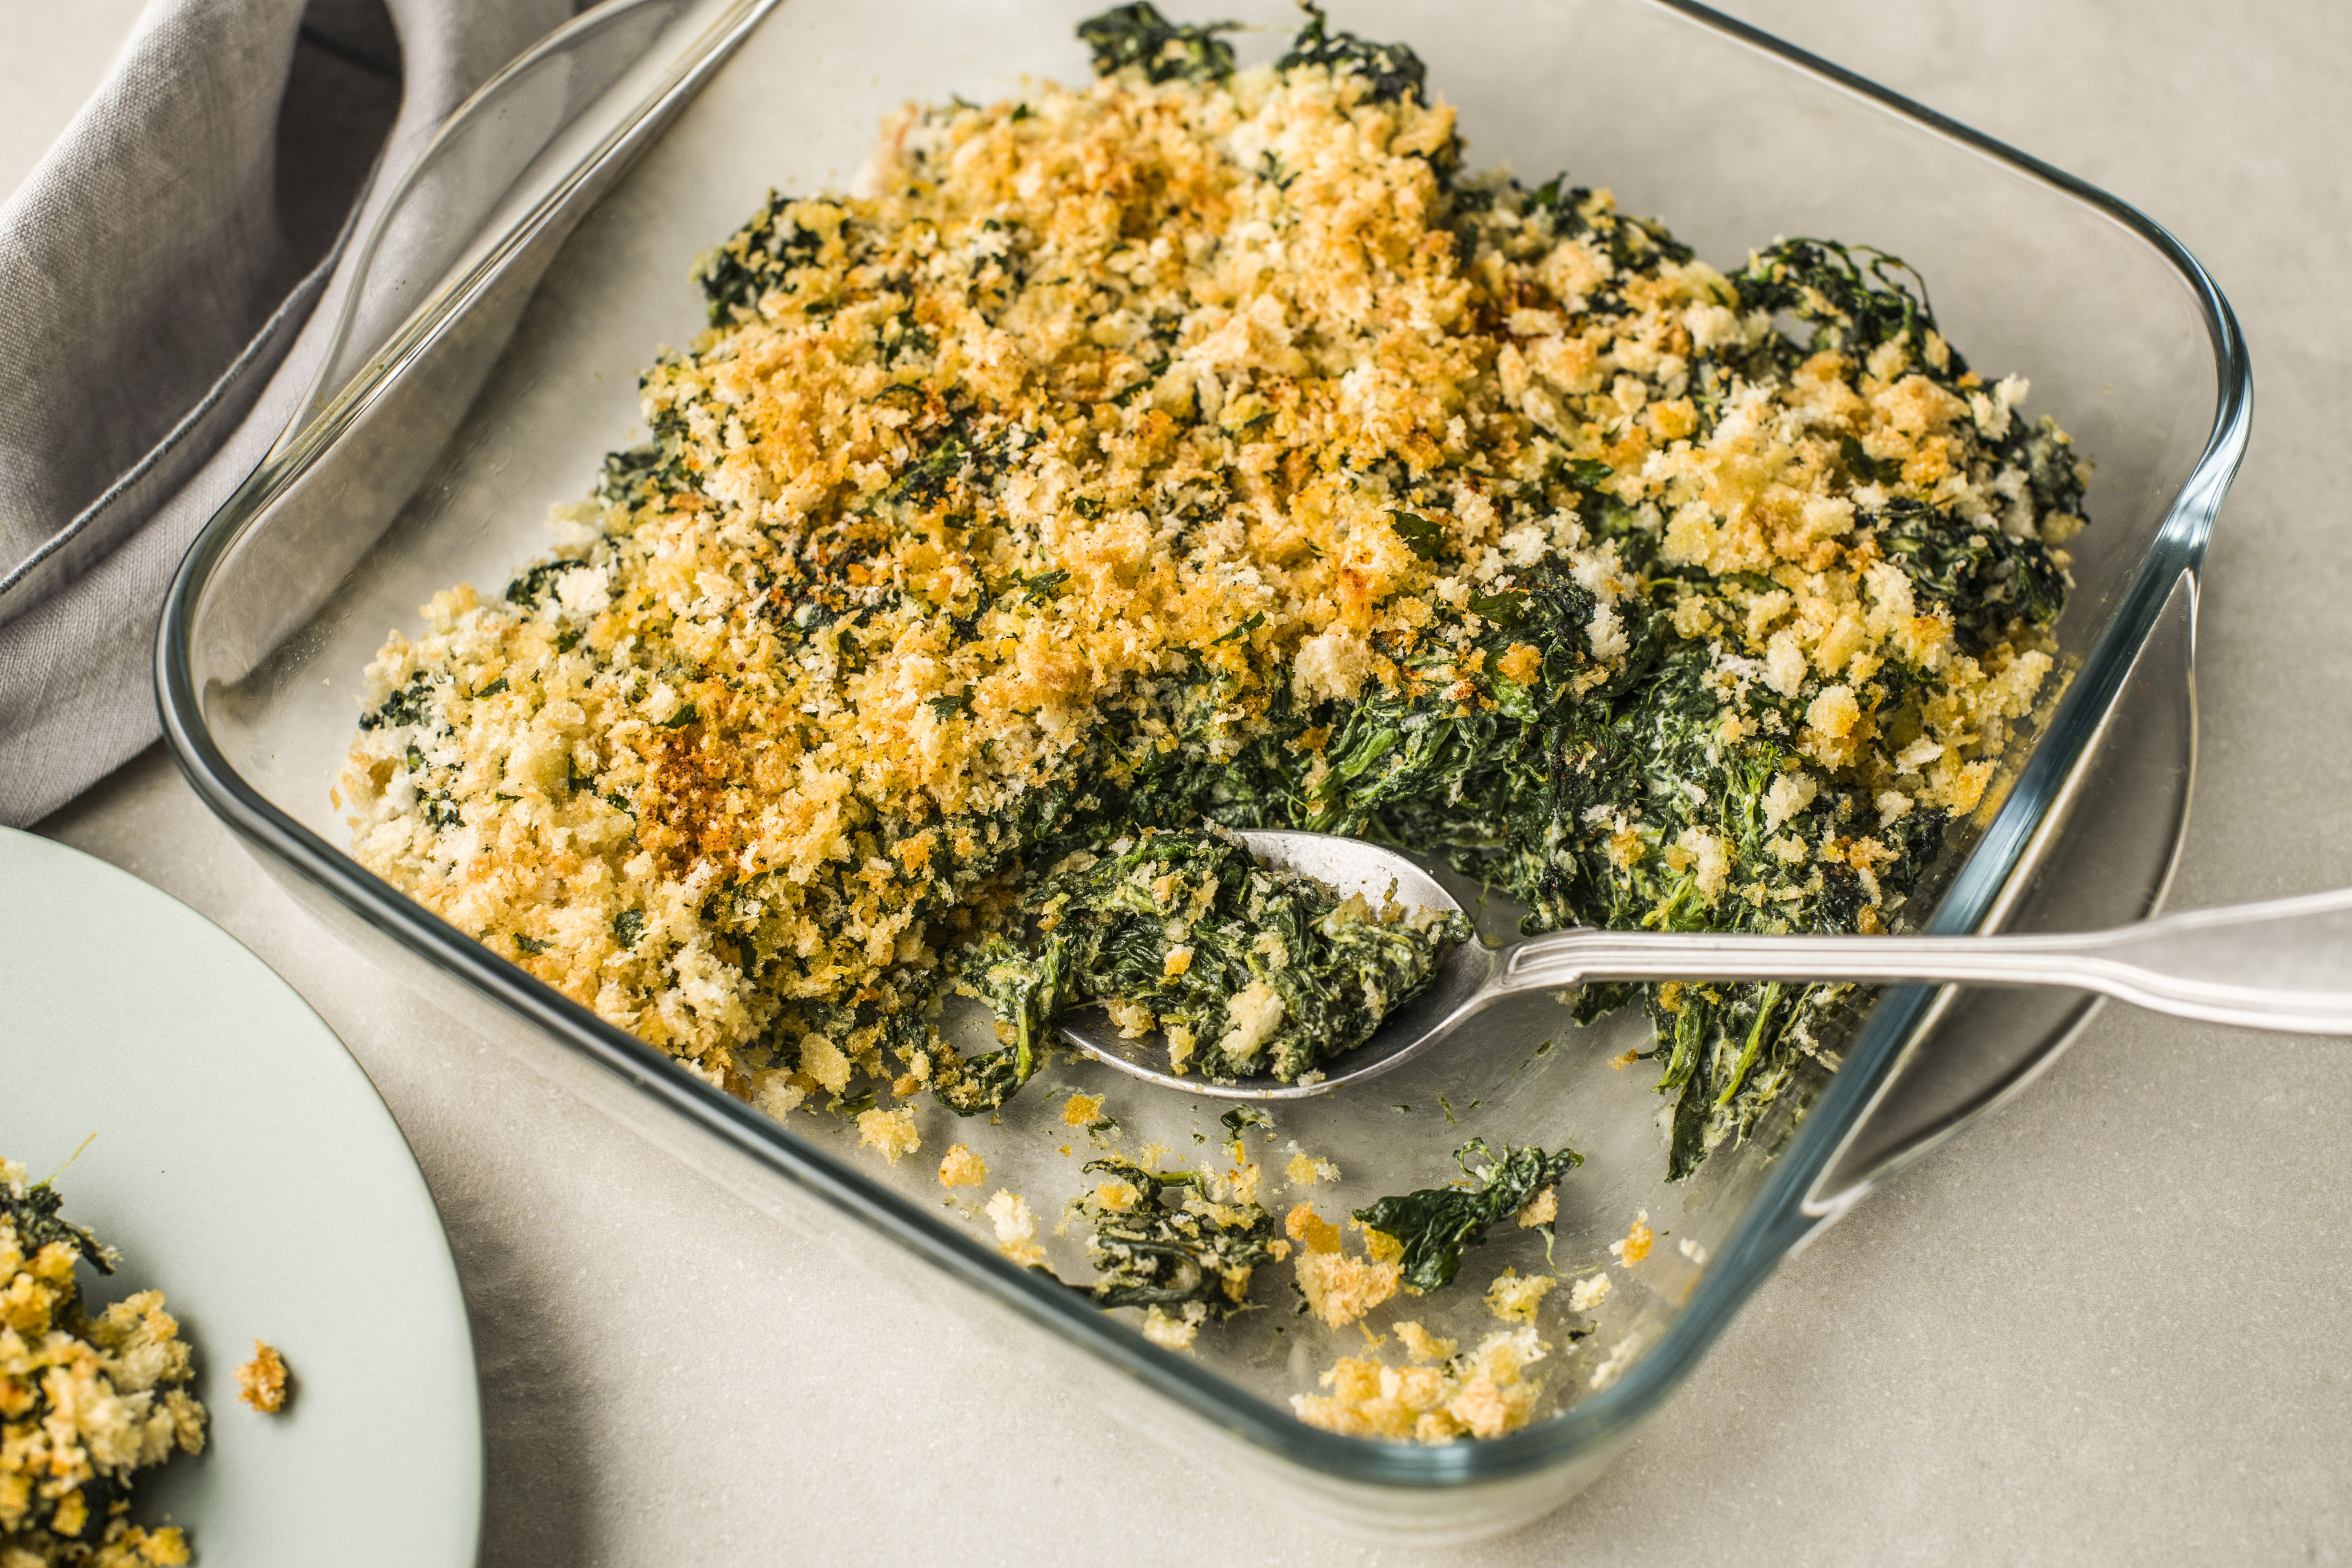 Serving spinach casserole from a glass baking dish